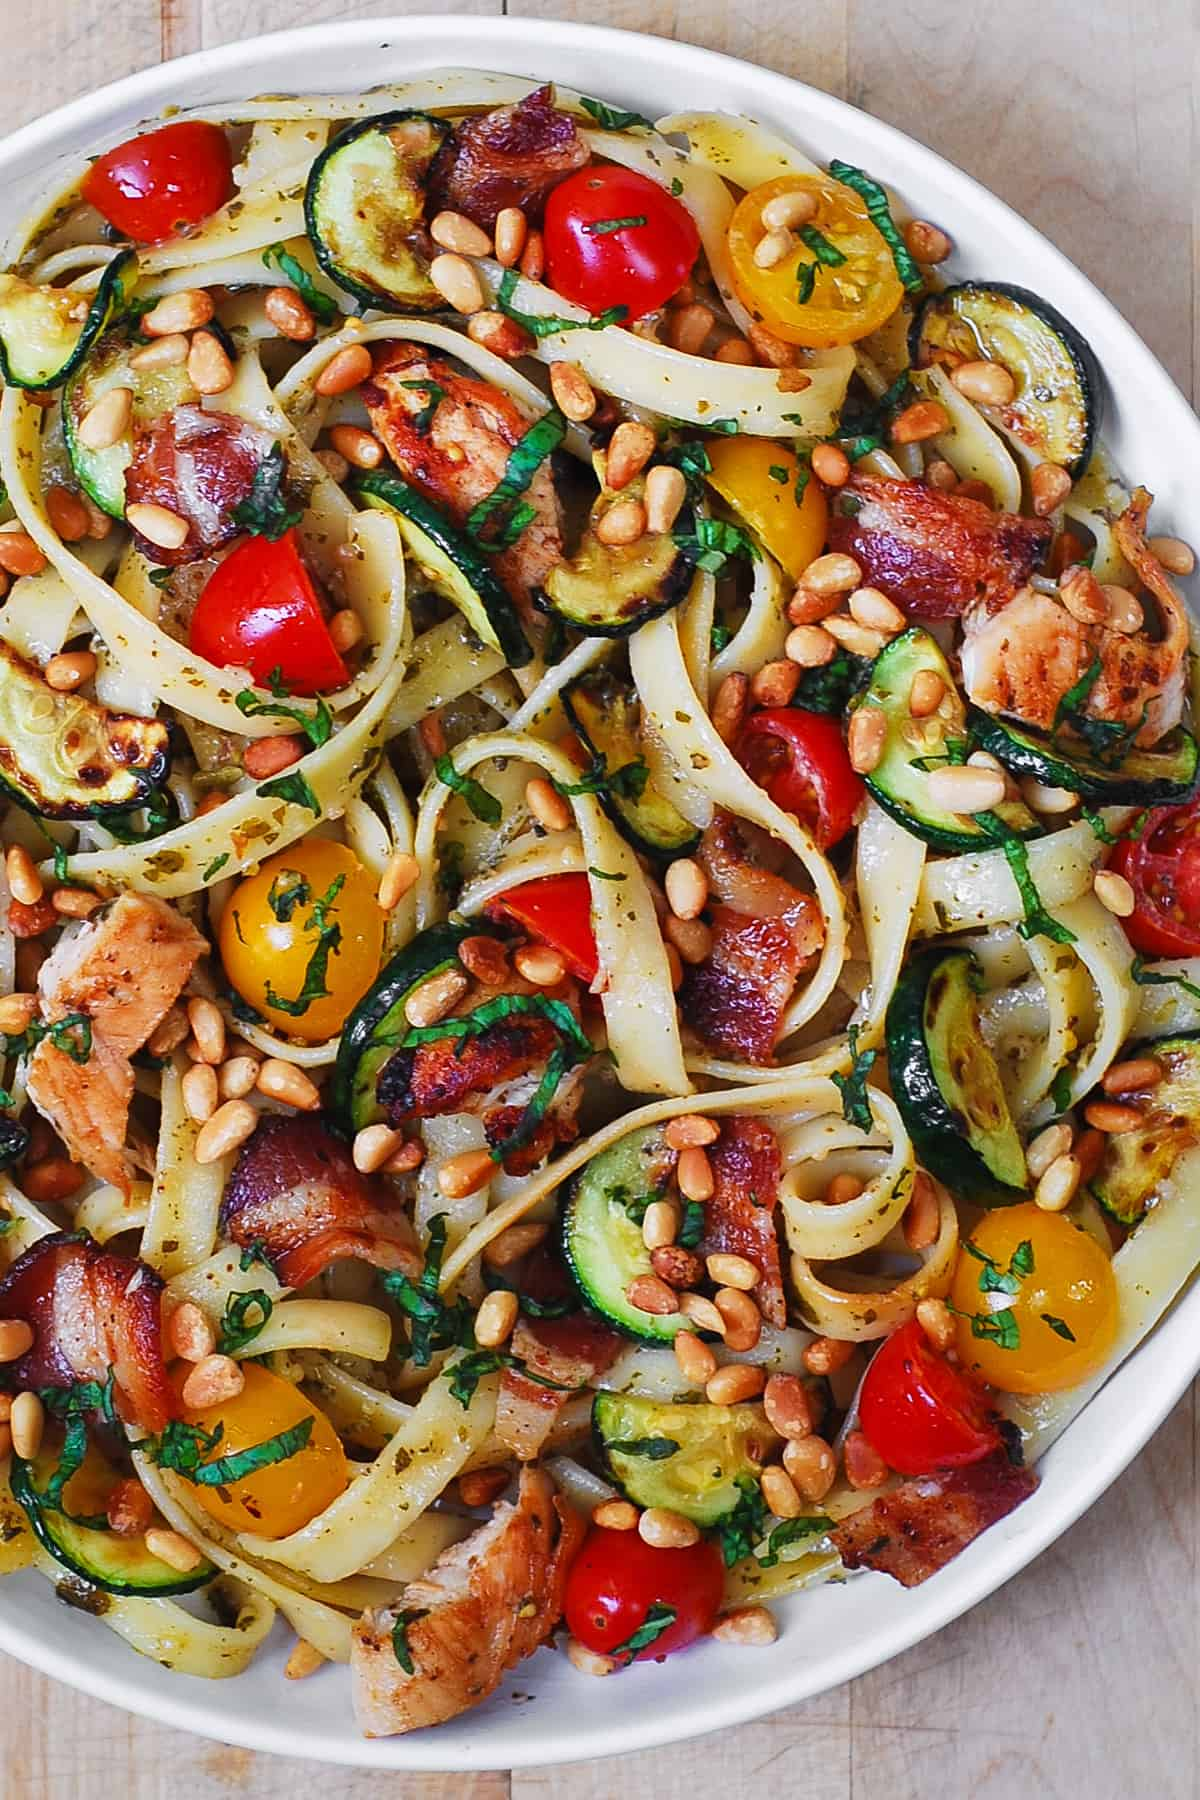 chicken bacon zucchini pasta with cherry tomatoes, basil, and pine nuts on a white pasta plate